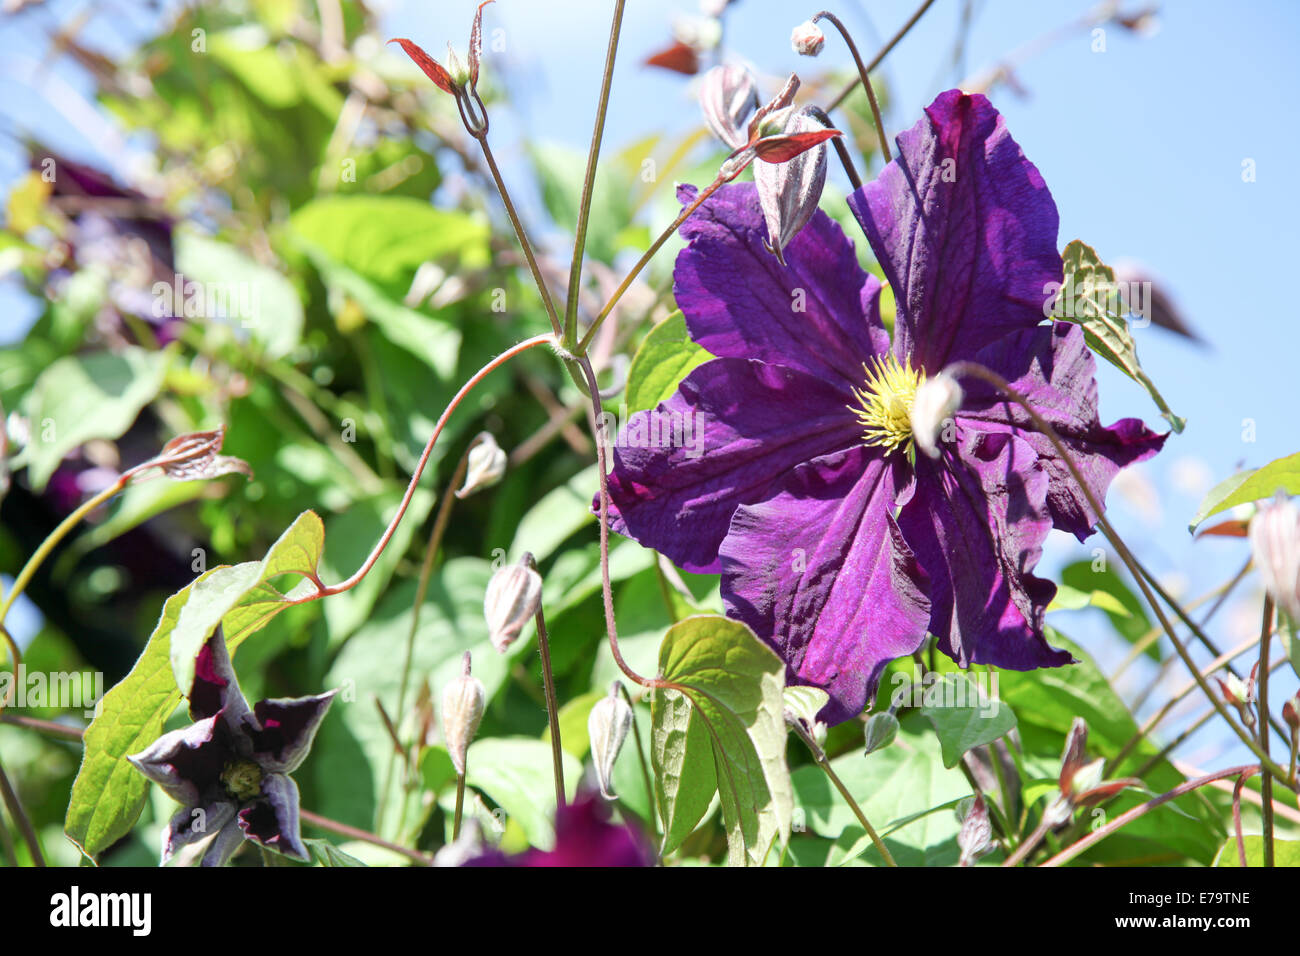 Clematis 'Viola' against a blue sky with foliage and buds - Stock Image